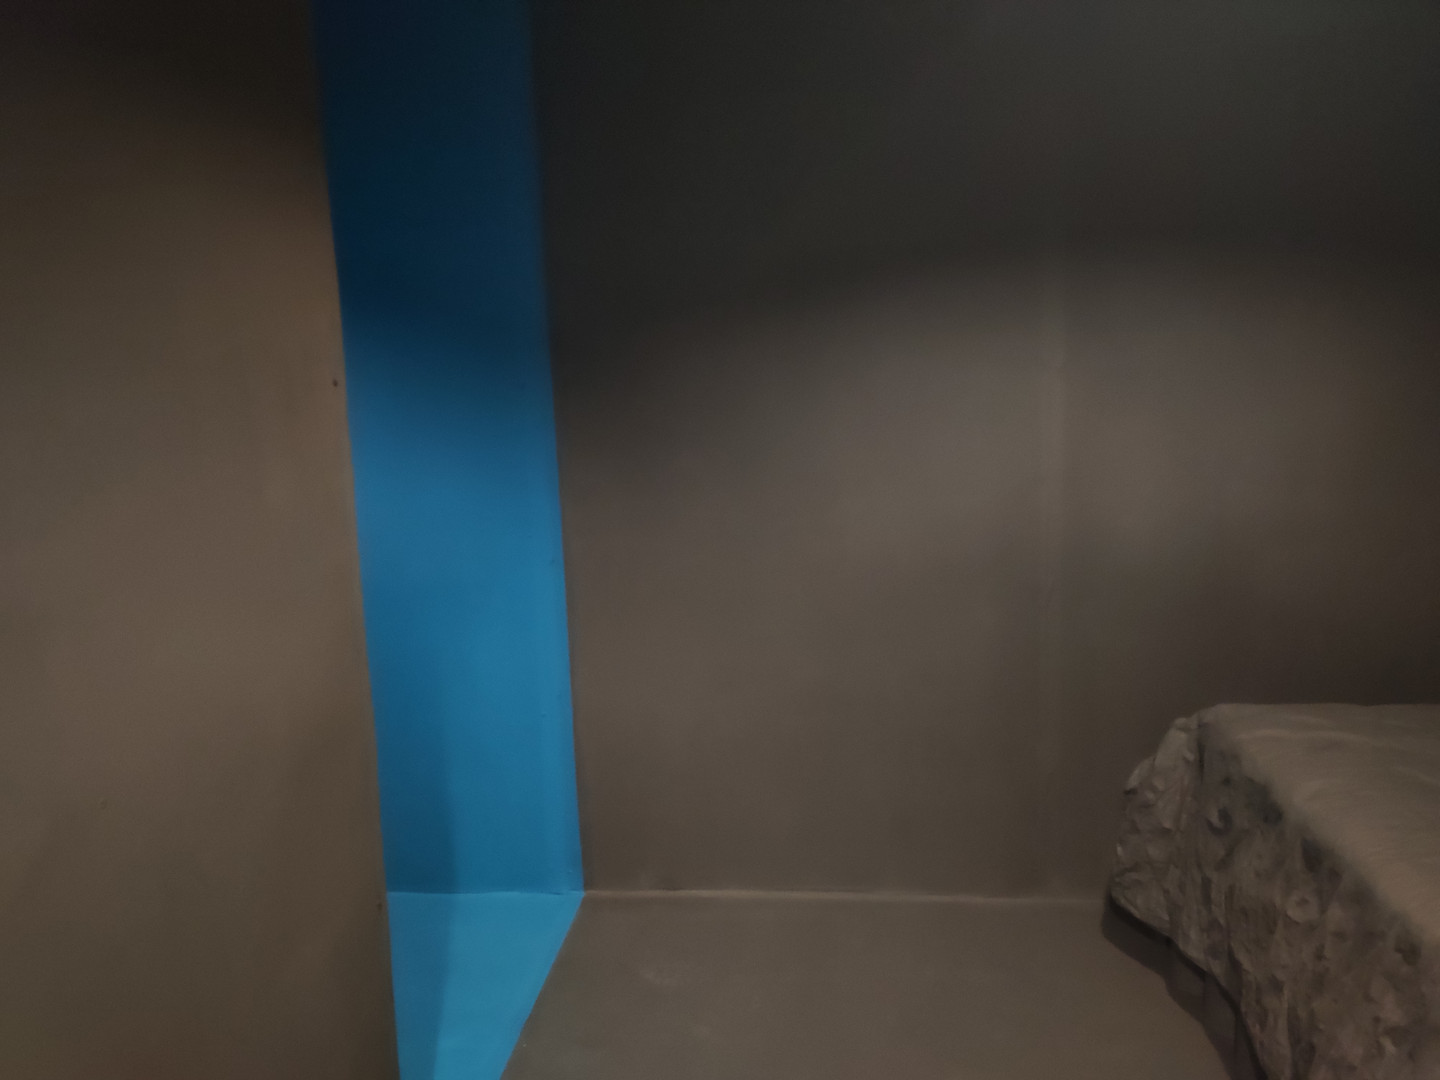 Hidey Hole, Reading Room, 2020. RSA New Contemporaries 2020, Royal Scottish Academy, Edinburgh.Paint supplied by Earthborn Paints